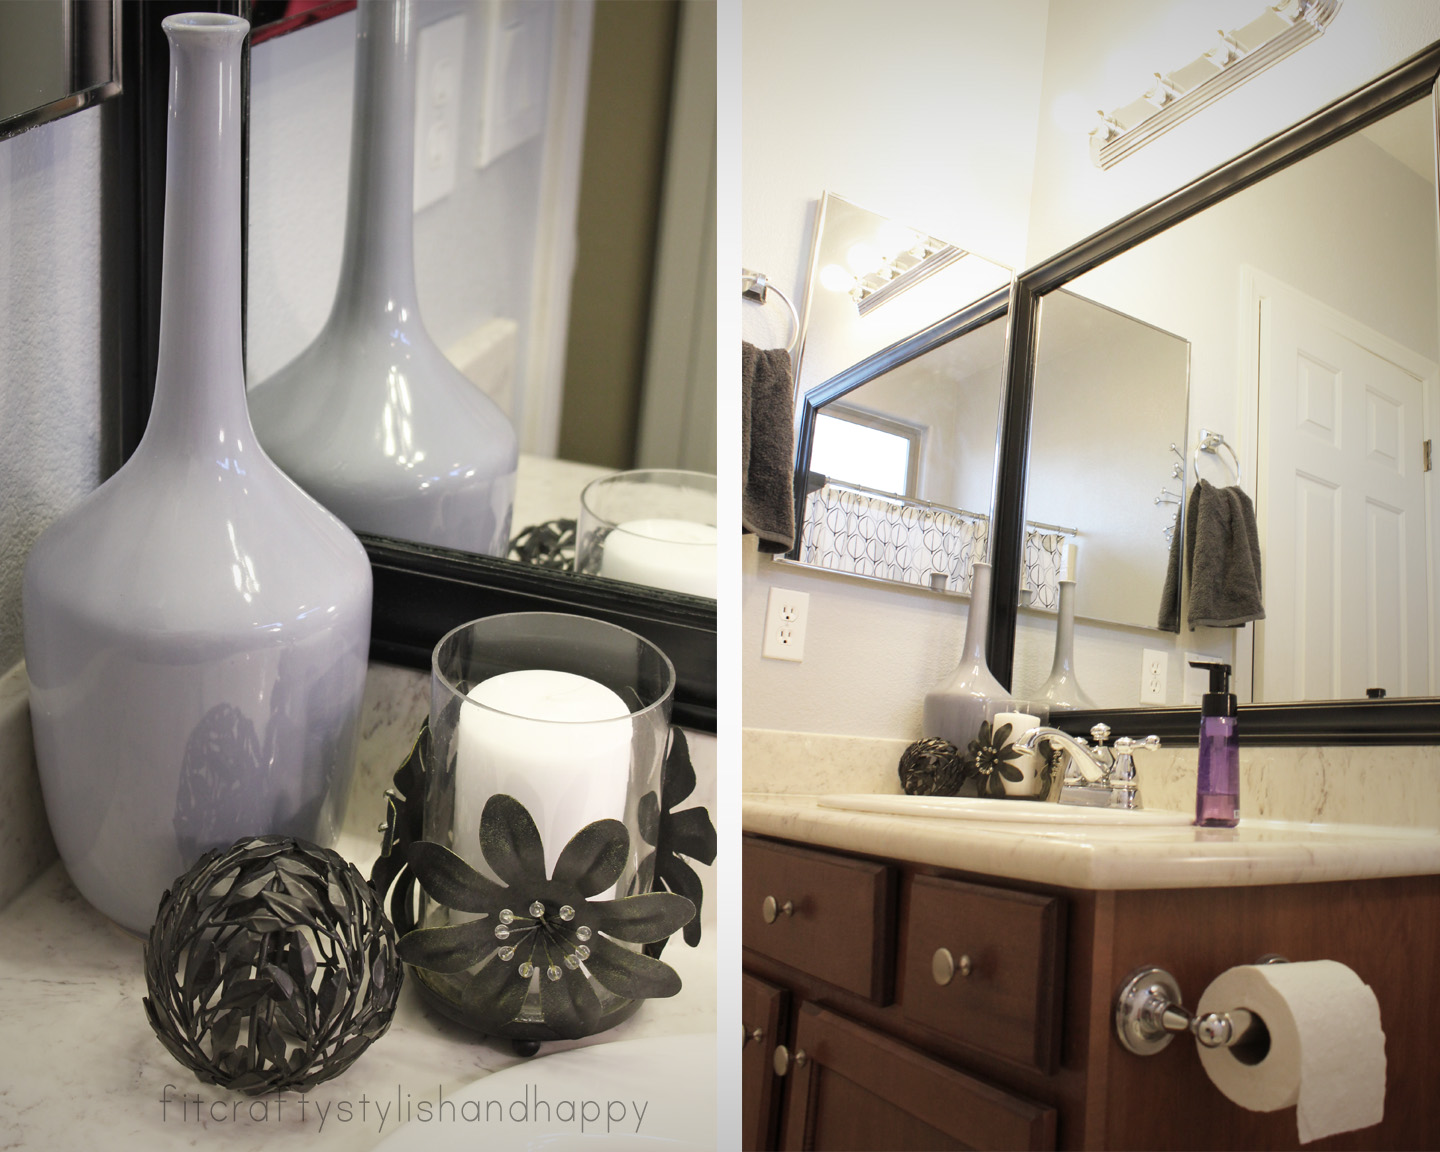 Fit crafty stylish and happy guest bathroom makeover for White and gray bathroom ideas